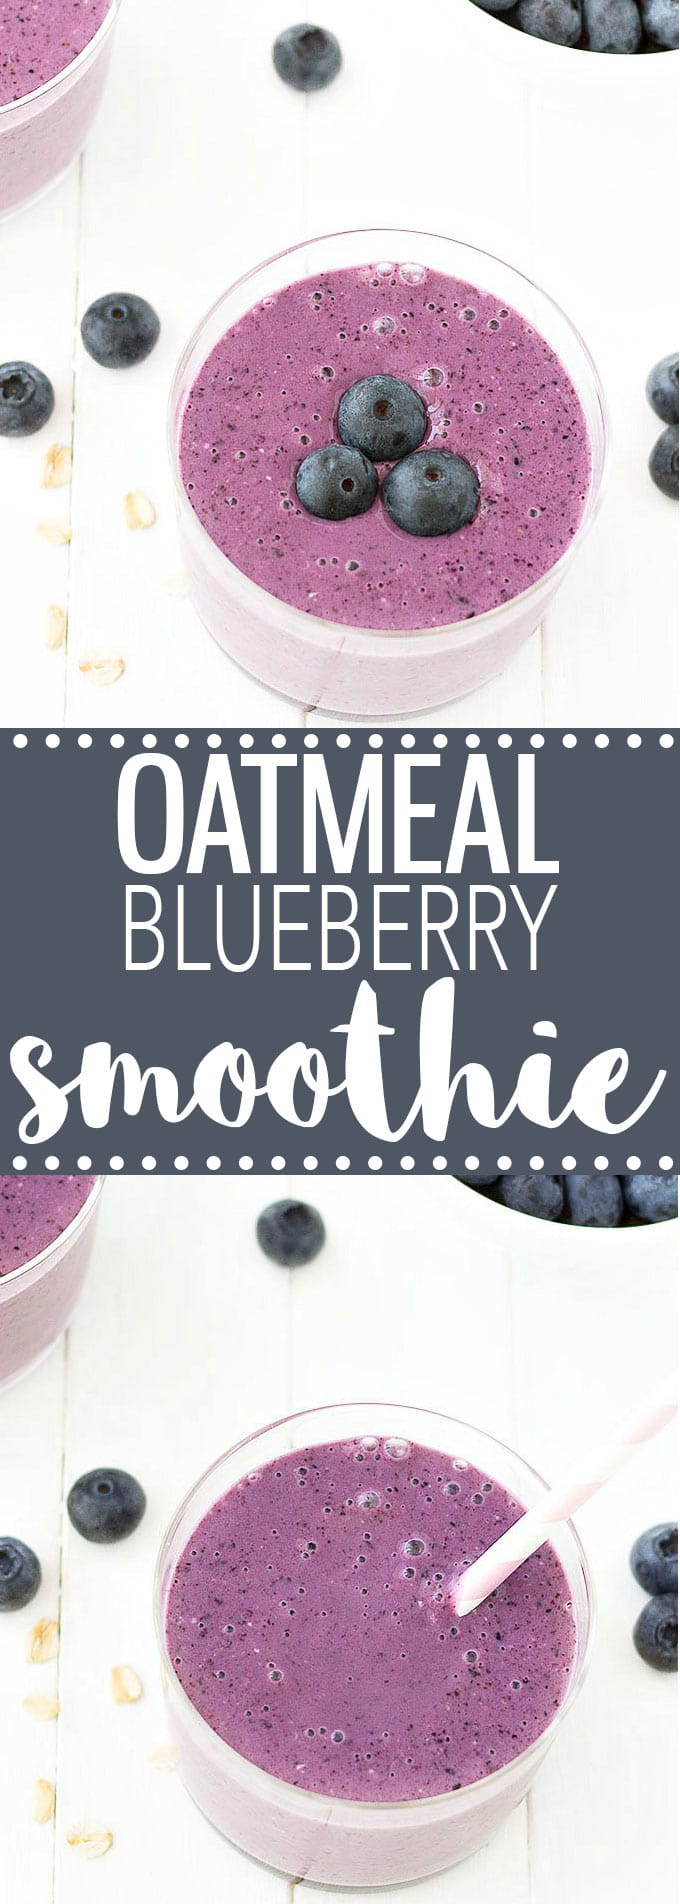 Creamy Oatmeal Blueberry Smoothie - A healthy breakfast or snack with only 4 ingredients: Greek yogurt, banana, oats, and blueberries.